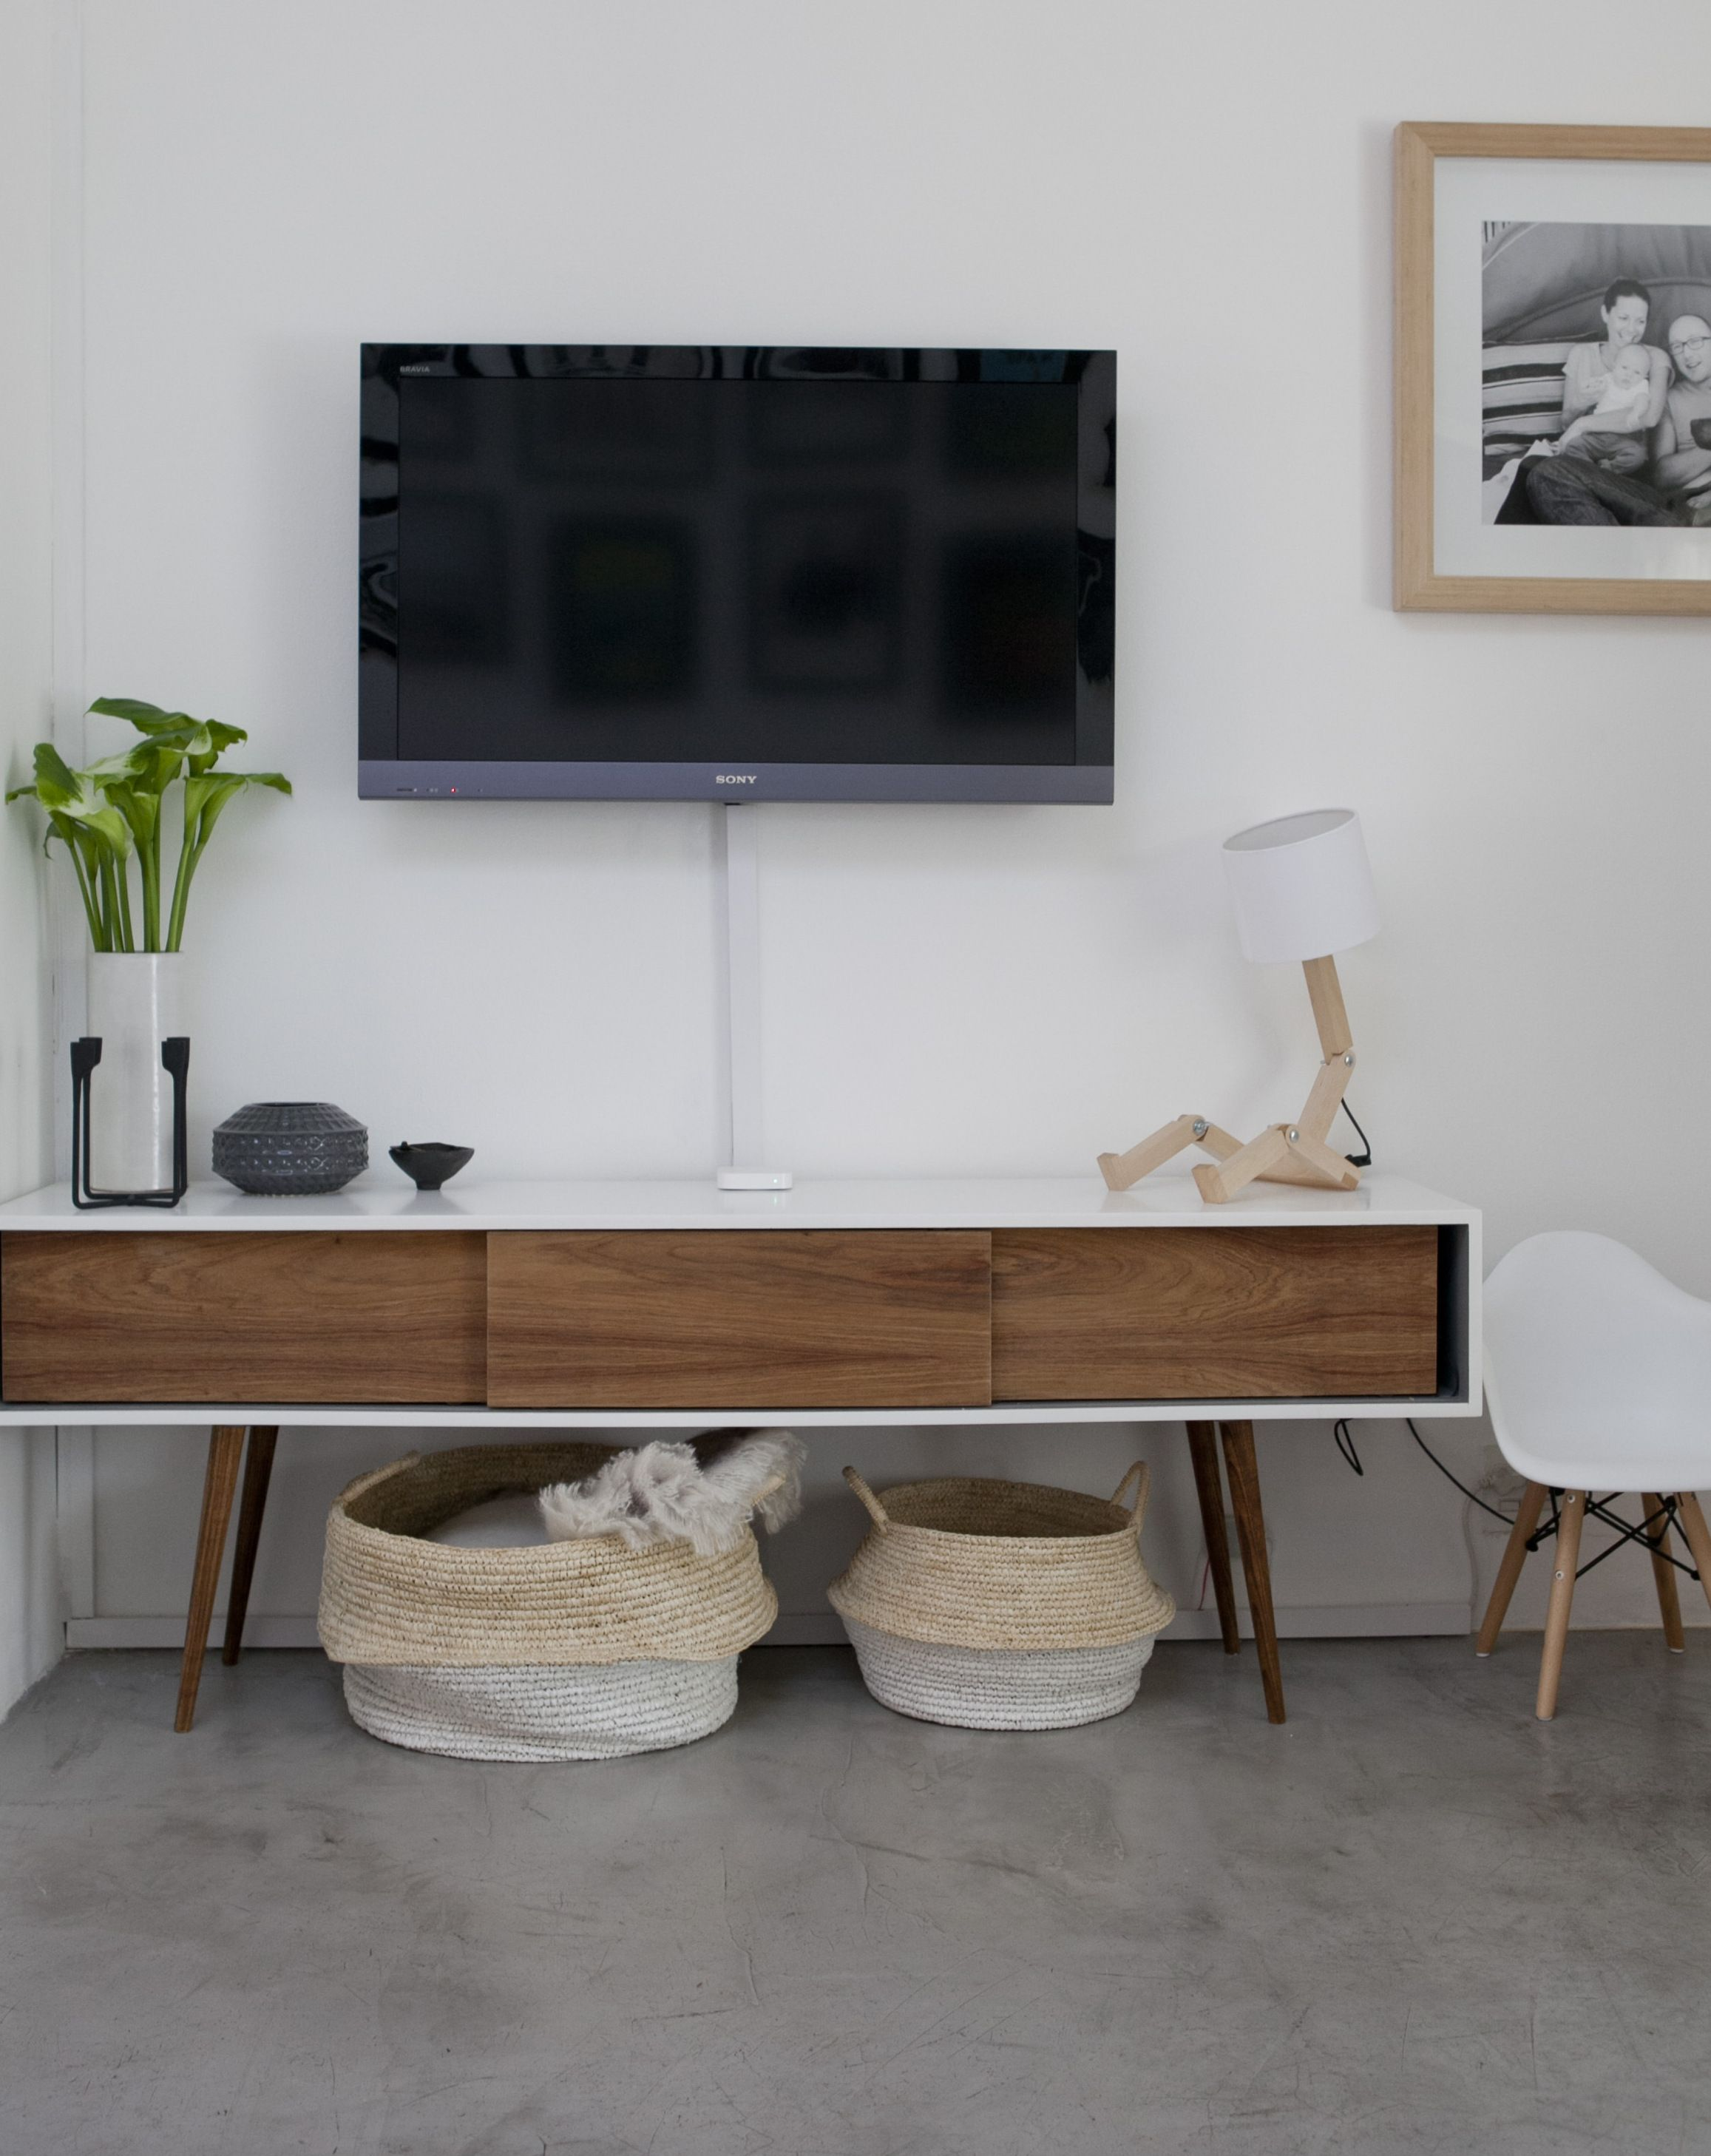 Kimgray 58 I Need That Brak Tv Cabinet Home Ideas Pinterest # Meuble Tv Articule